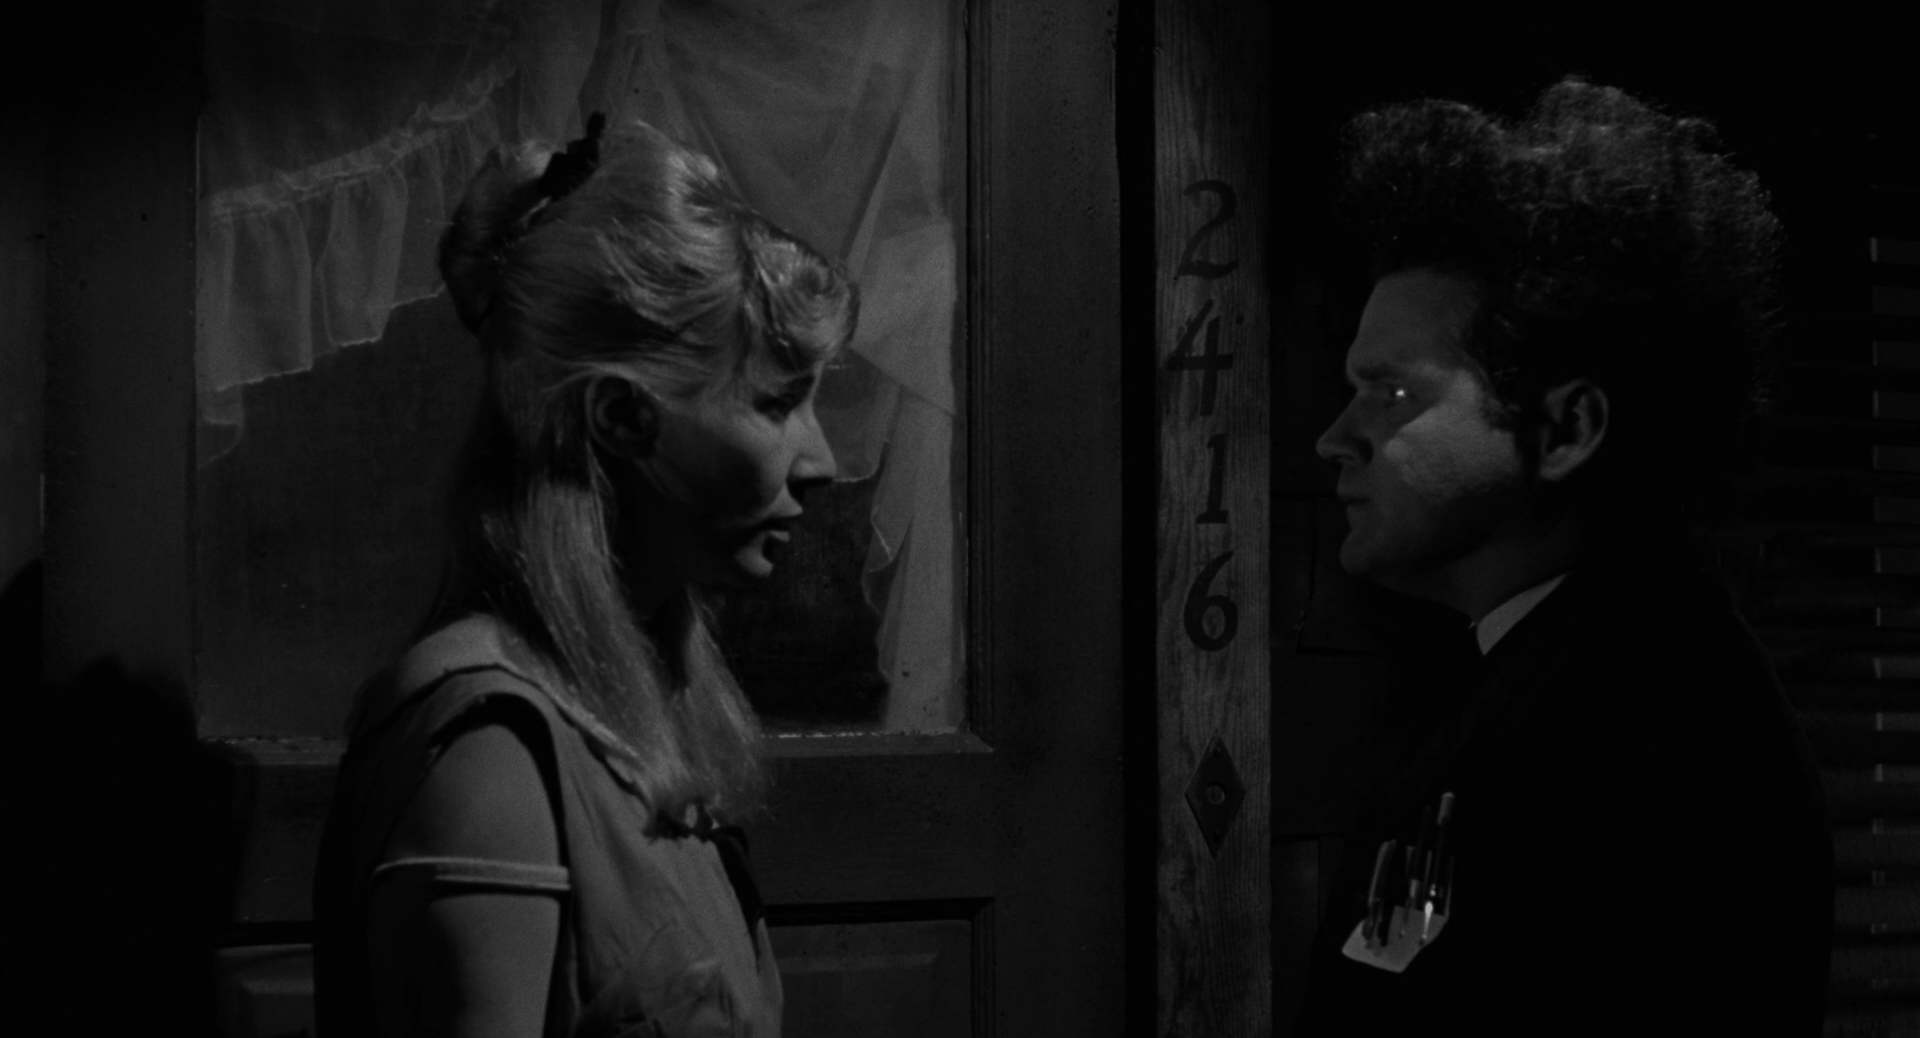 Dvd Exotica Eraserhead And The Short Films Of David Lynch Dvd Blu Ray Comparison